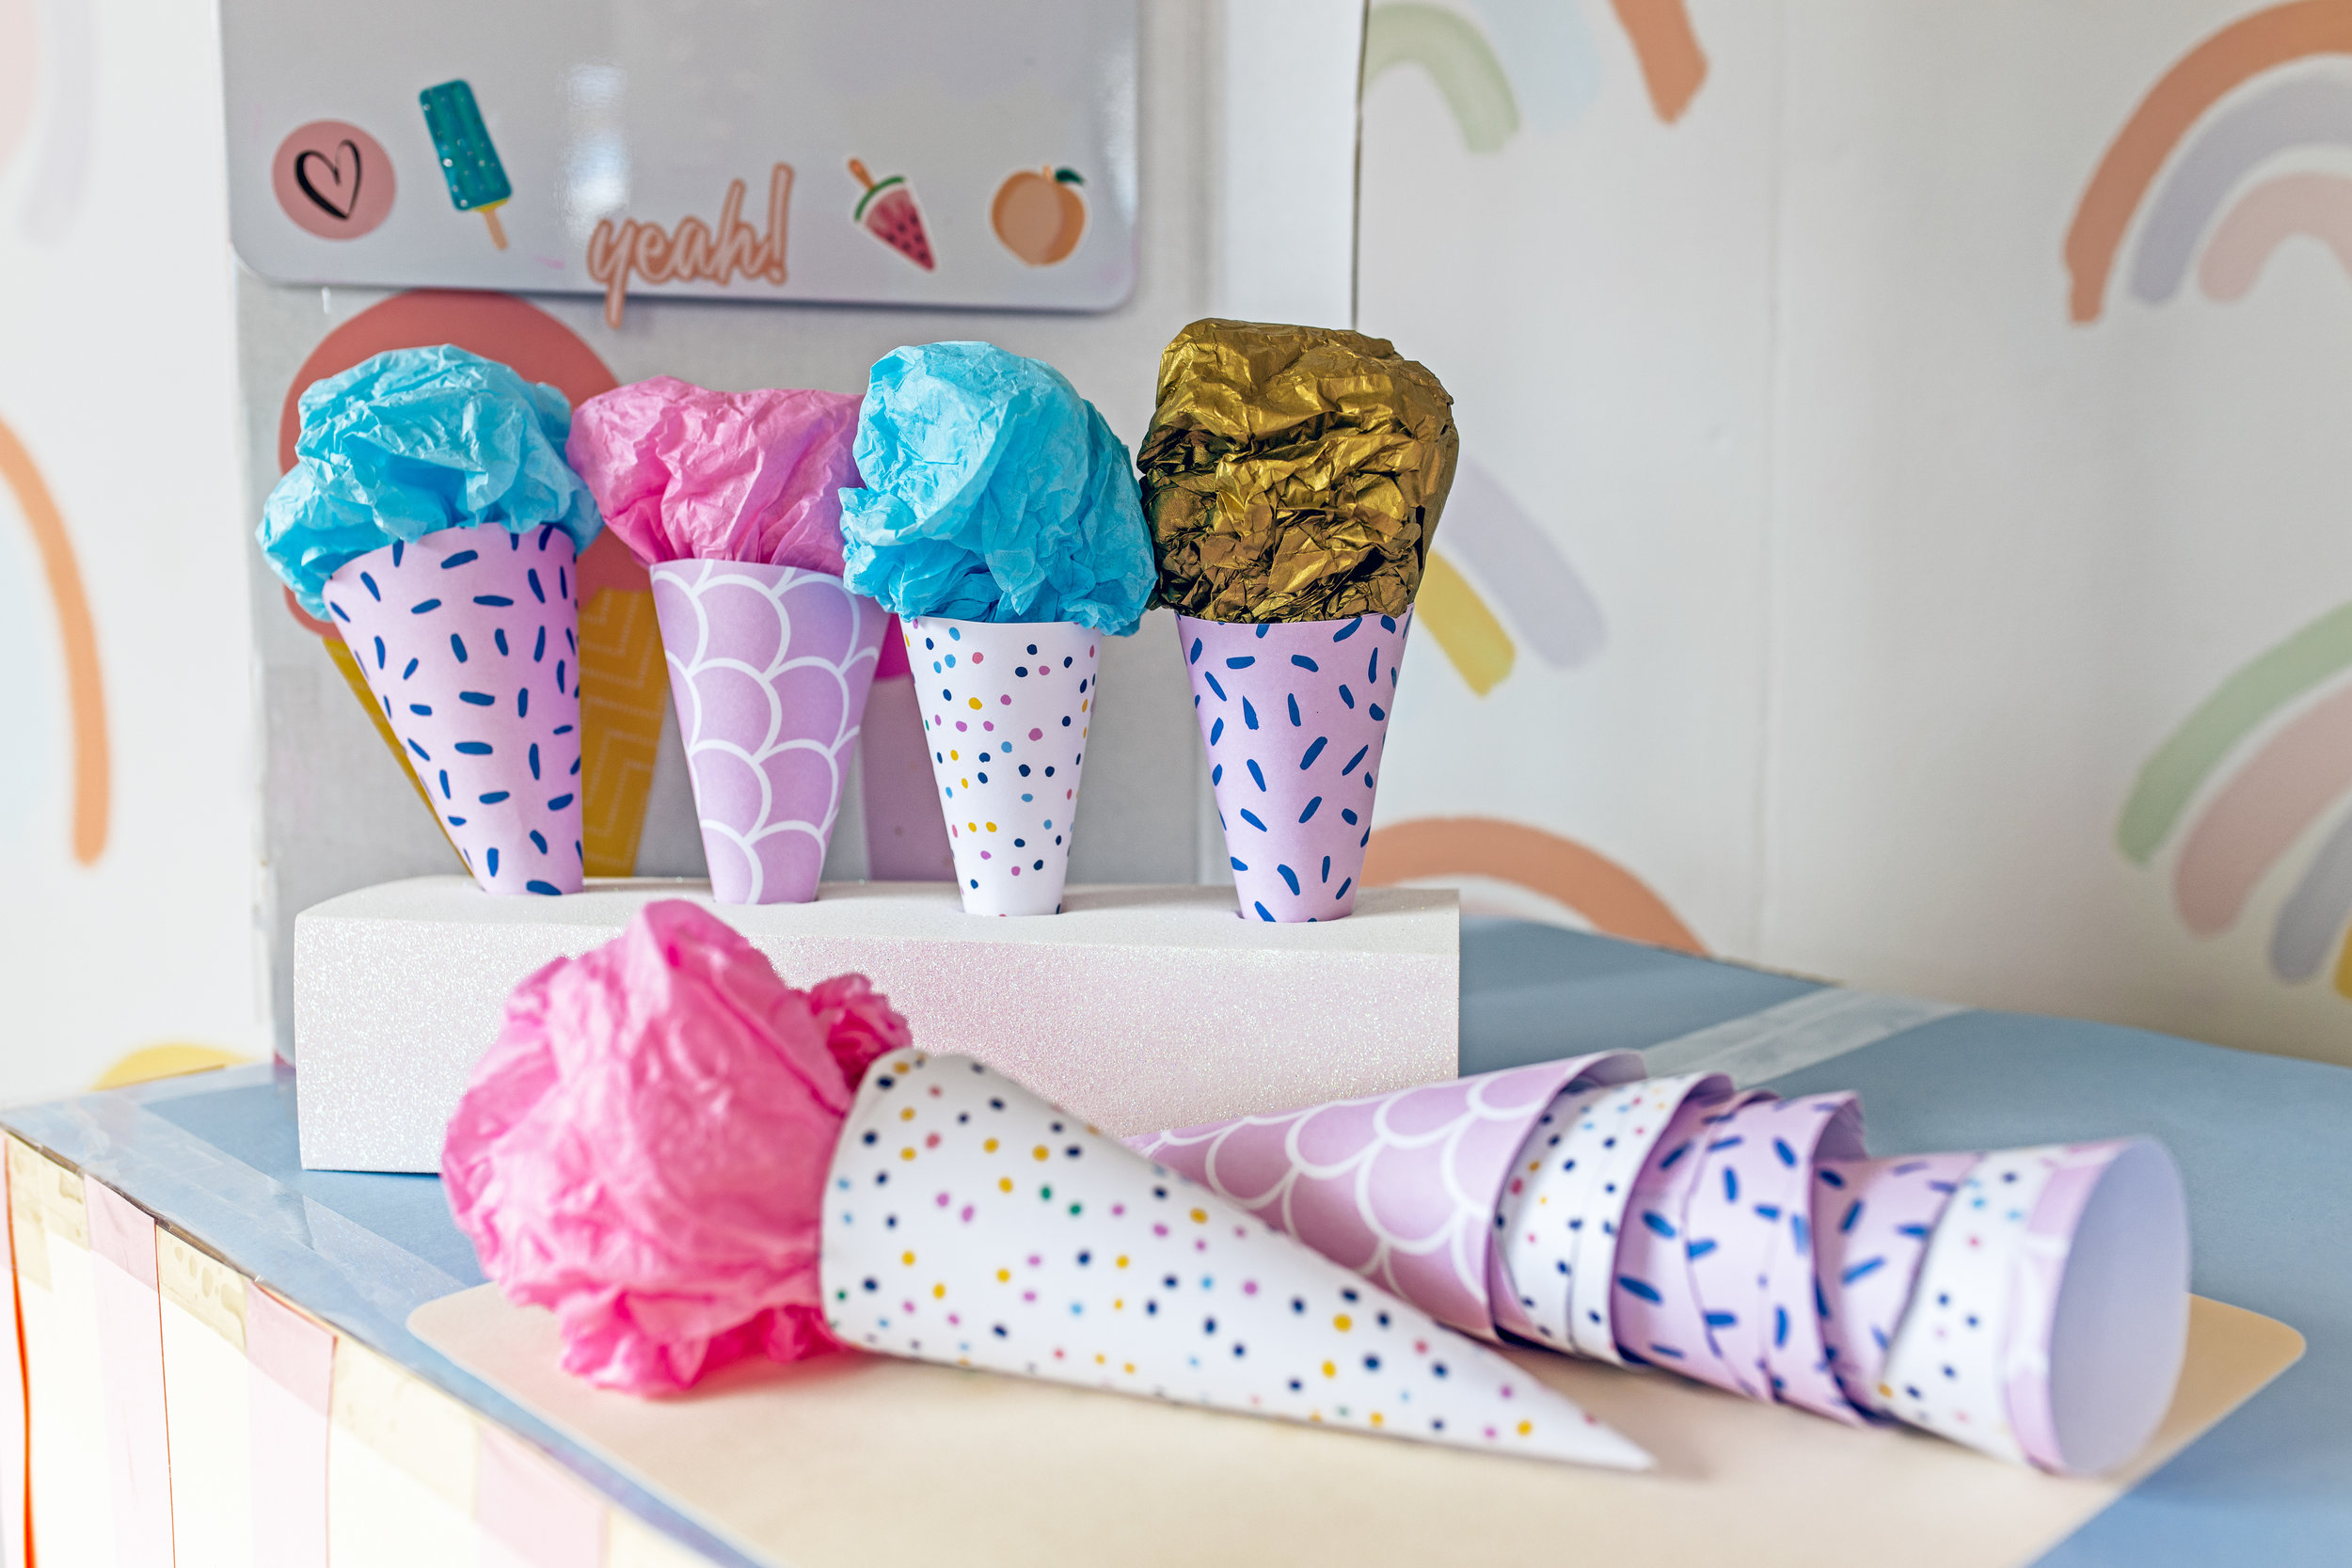 DIY Ice Cream Shop by CLever Poppy cones.jpg